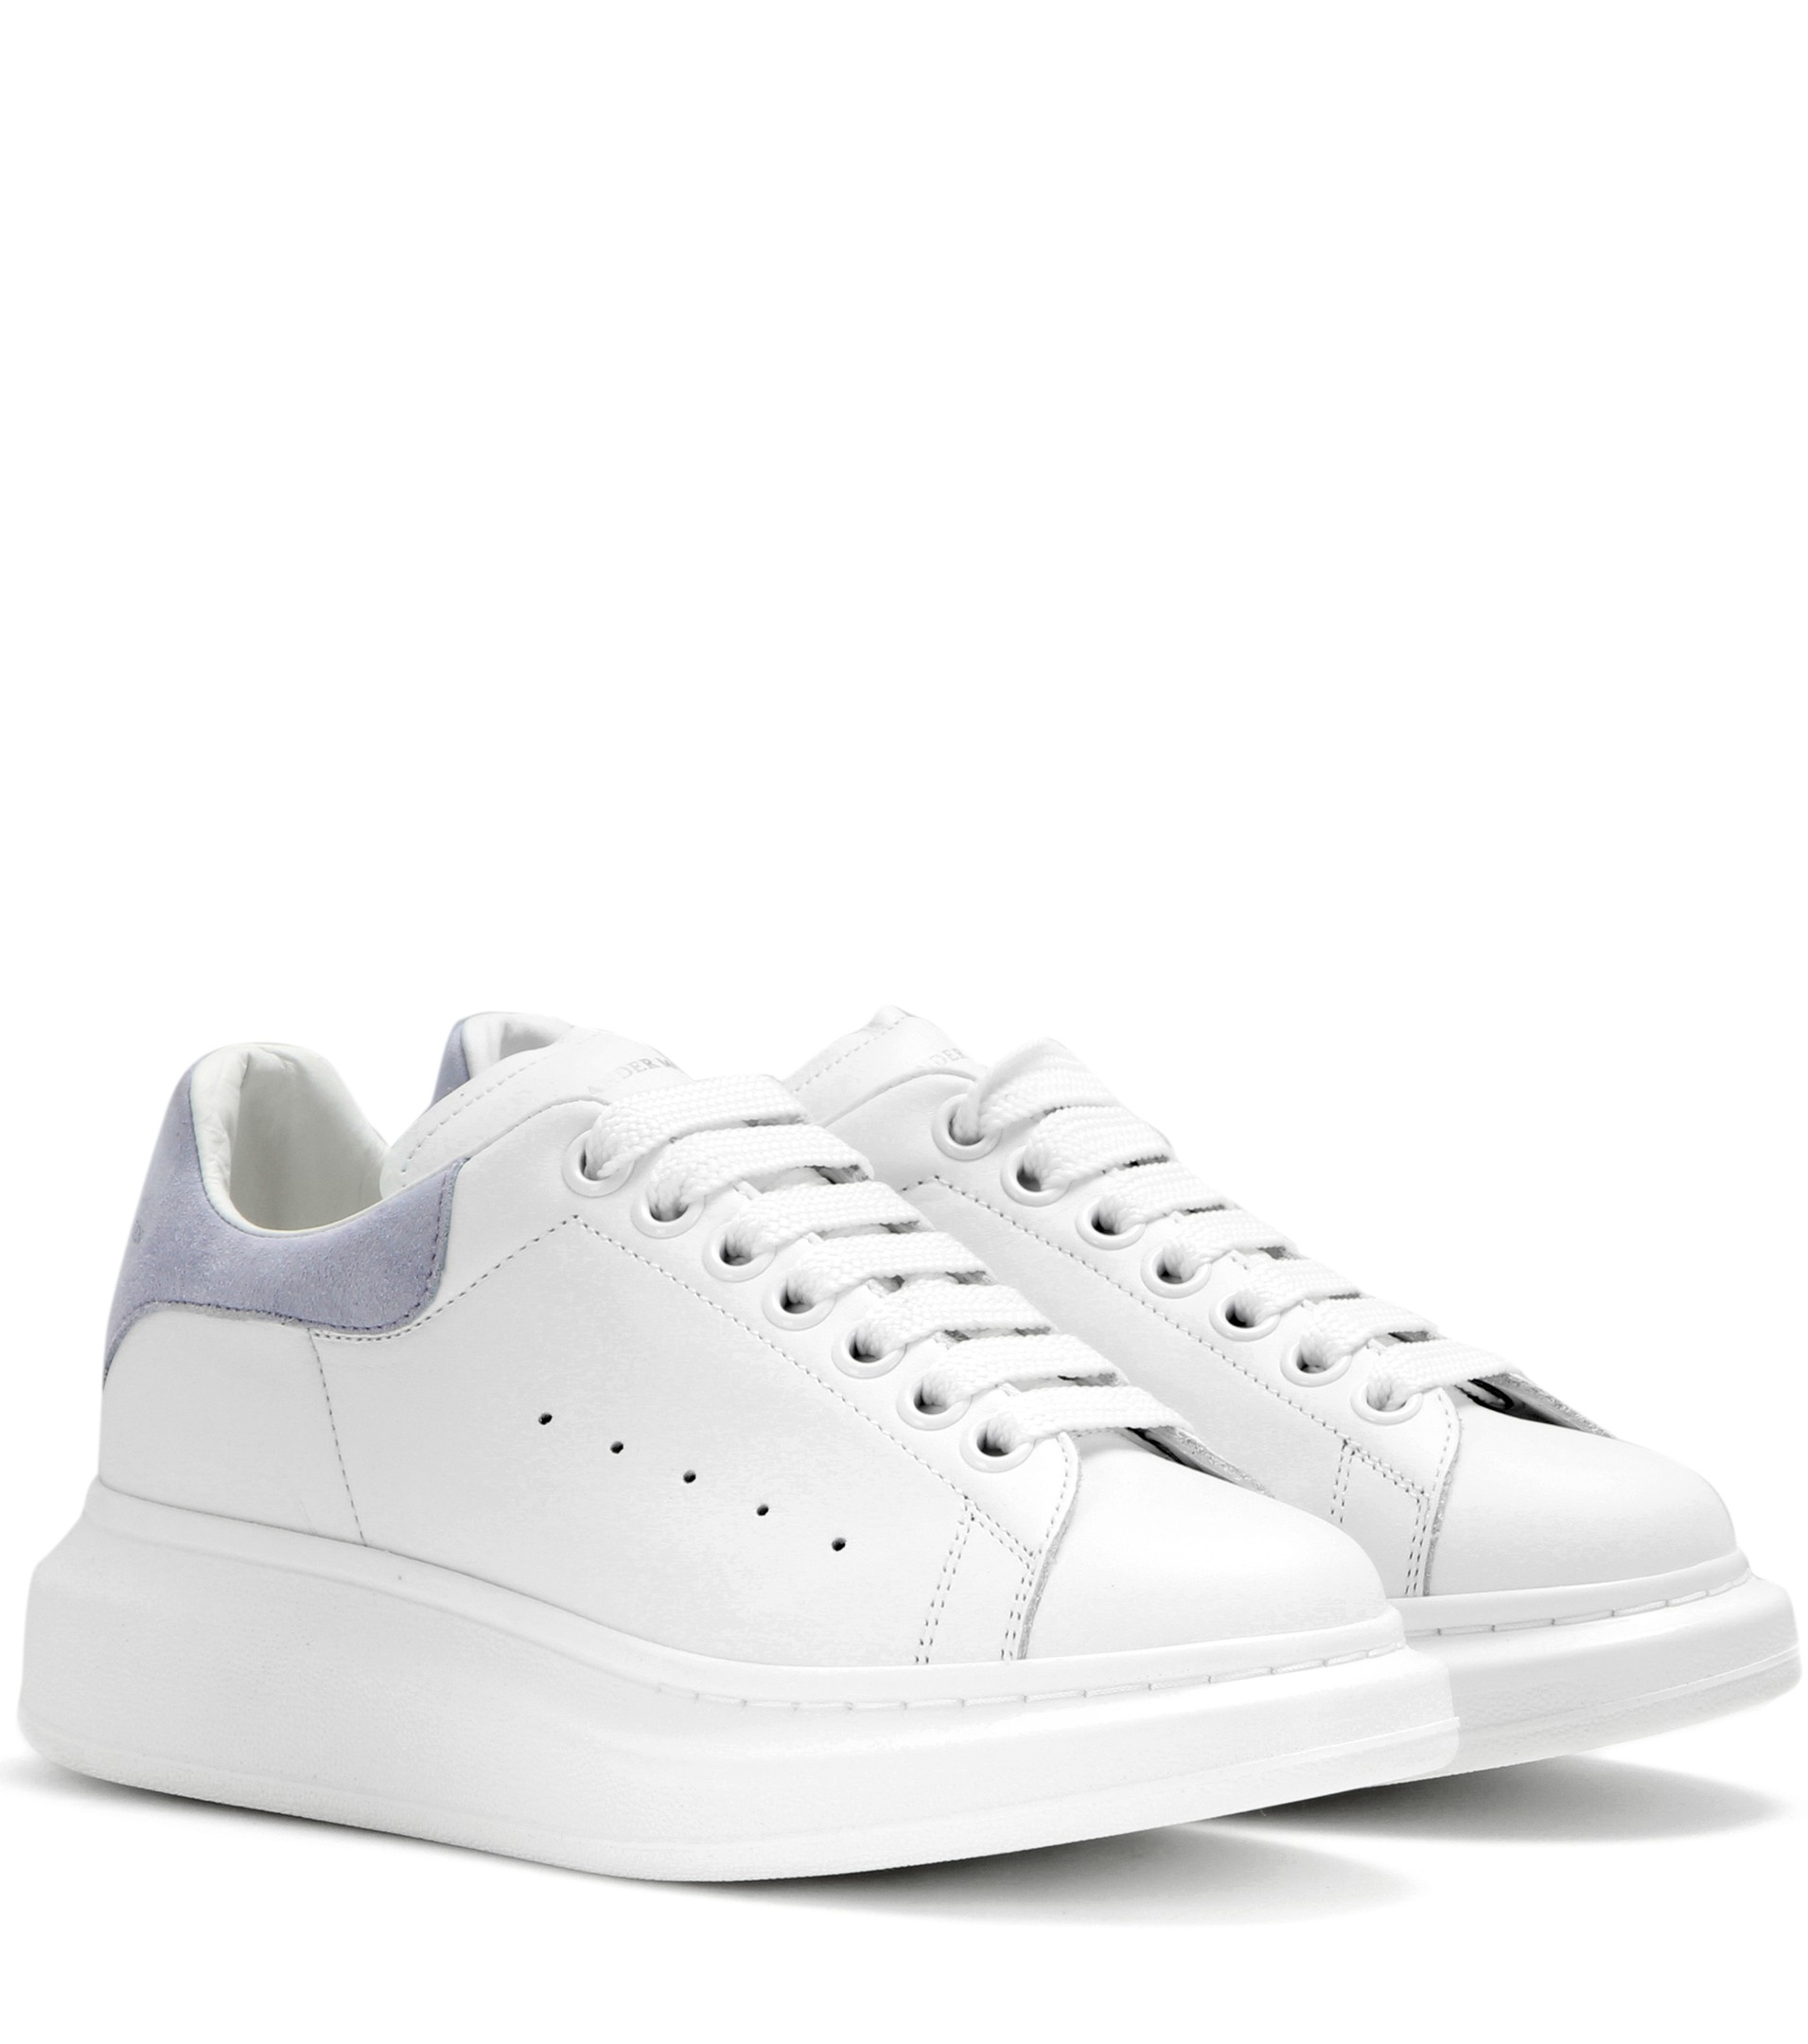 e57d927324ab Lyst - Alexander McQueen Leather And Suede Sneakers in White